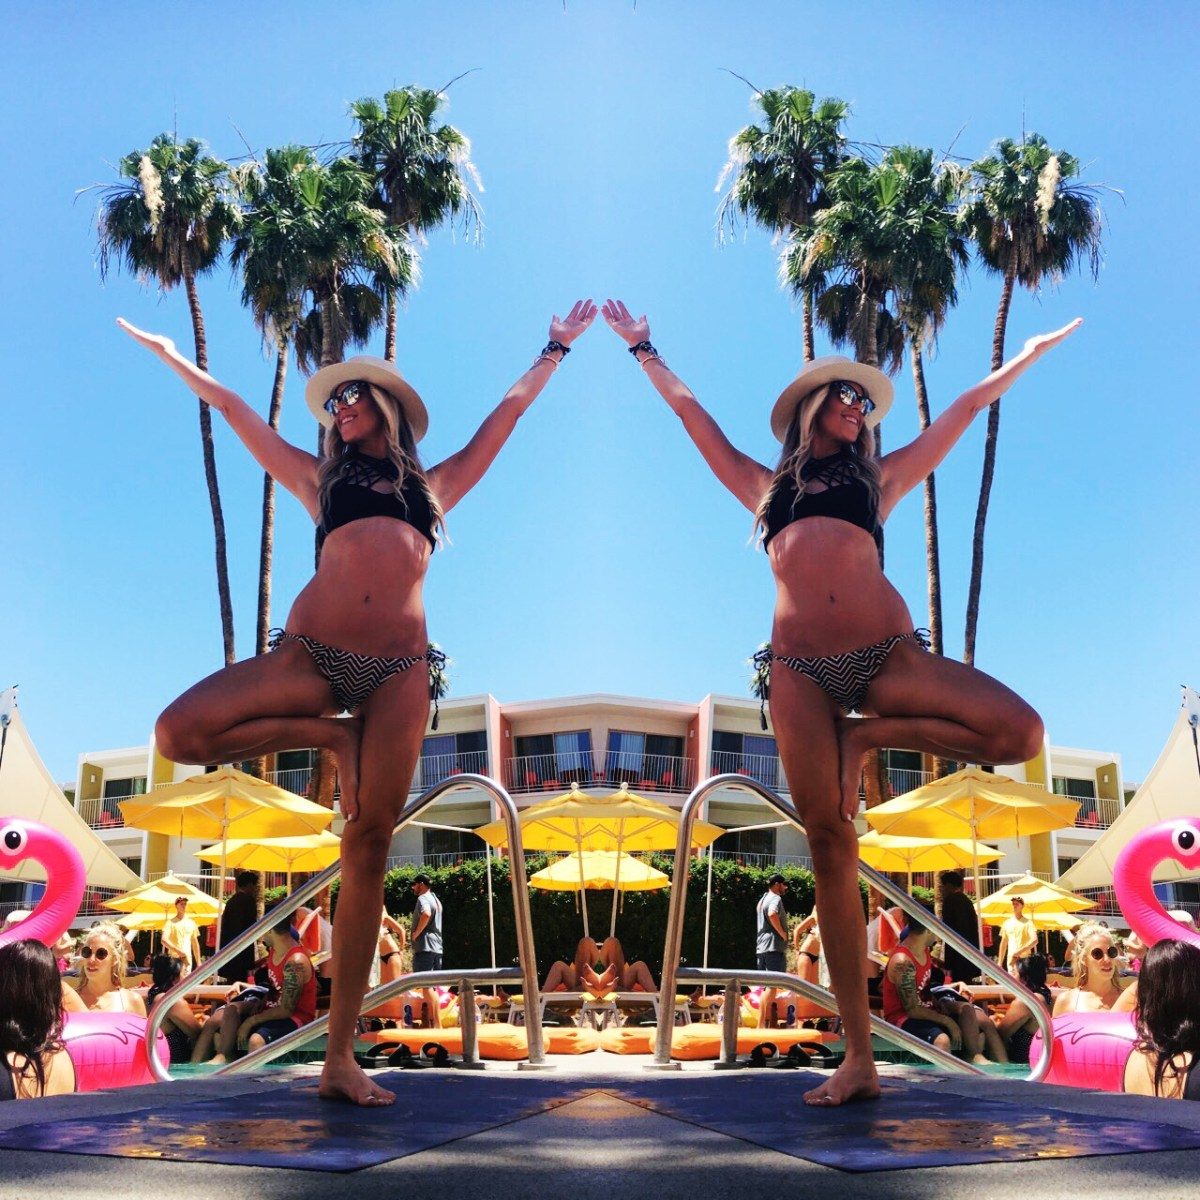 I Heart Palm Springs | The Saguaro Palm Springs Hotel